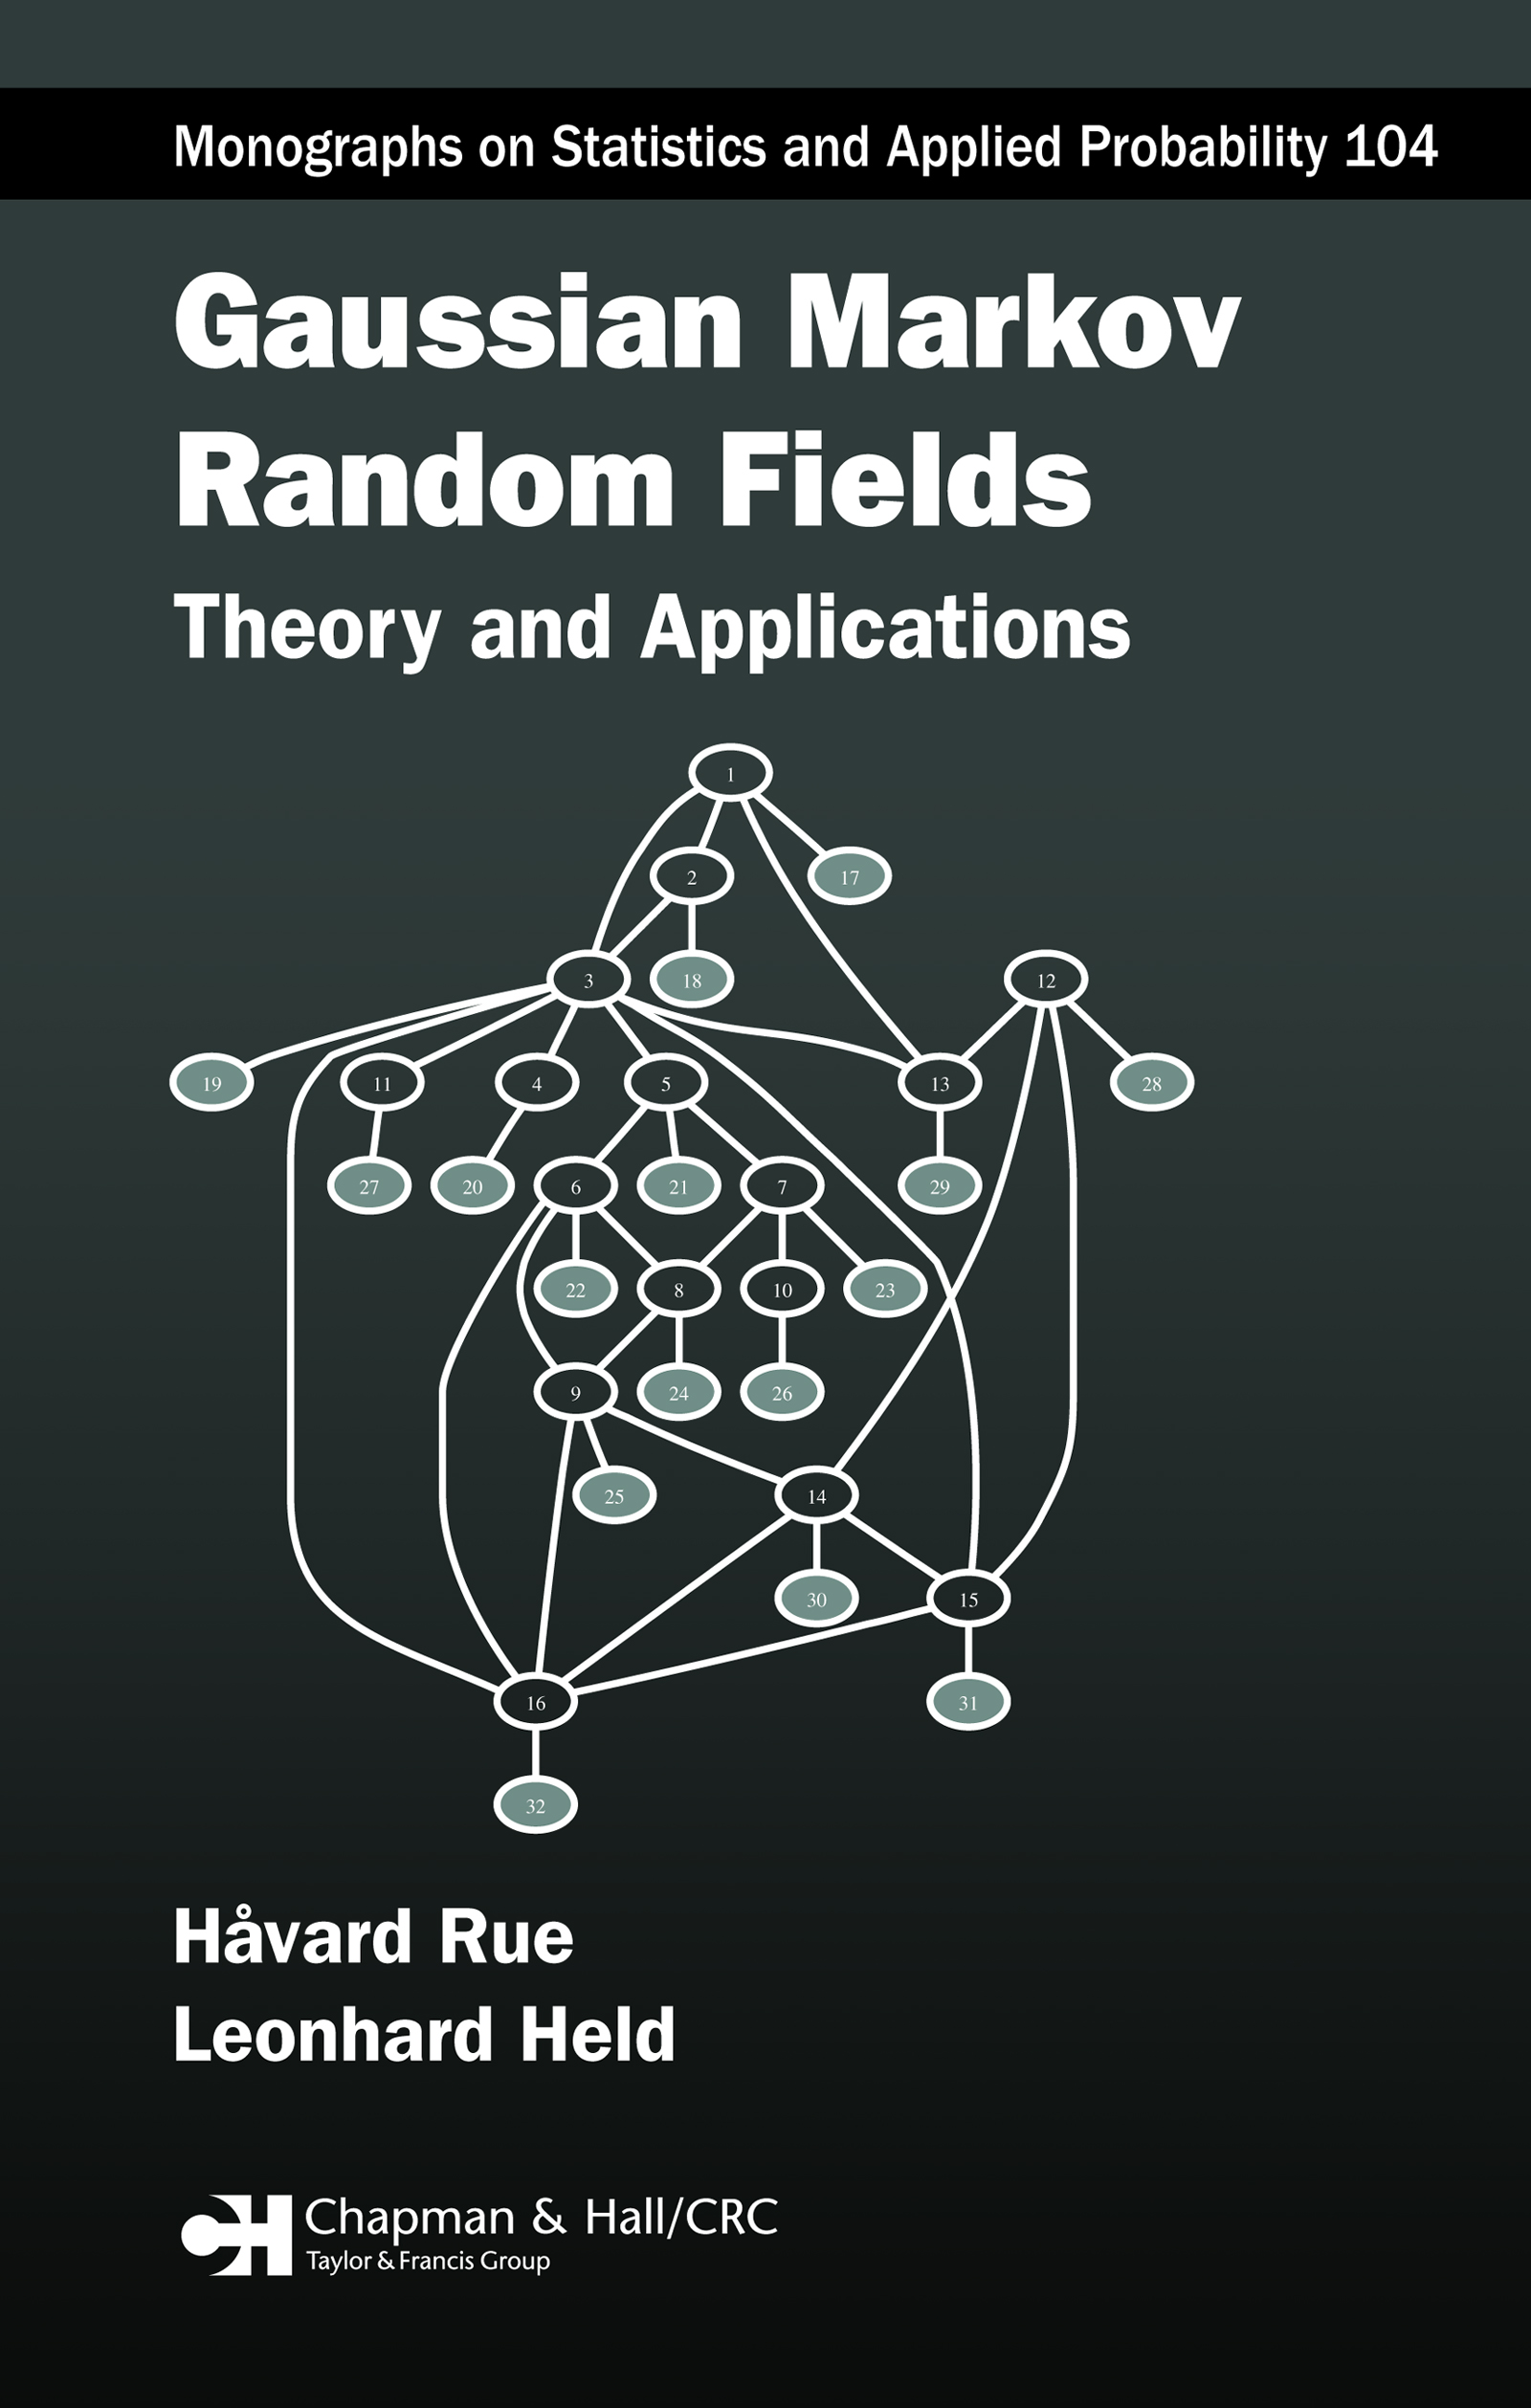 Gaussian Markov Random Fields: Theory and Applications